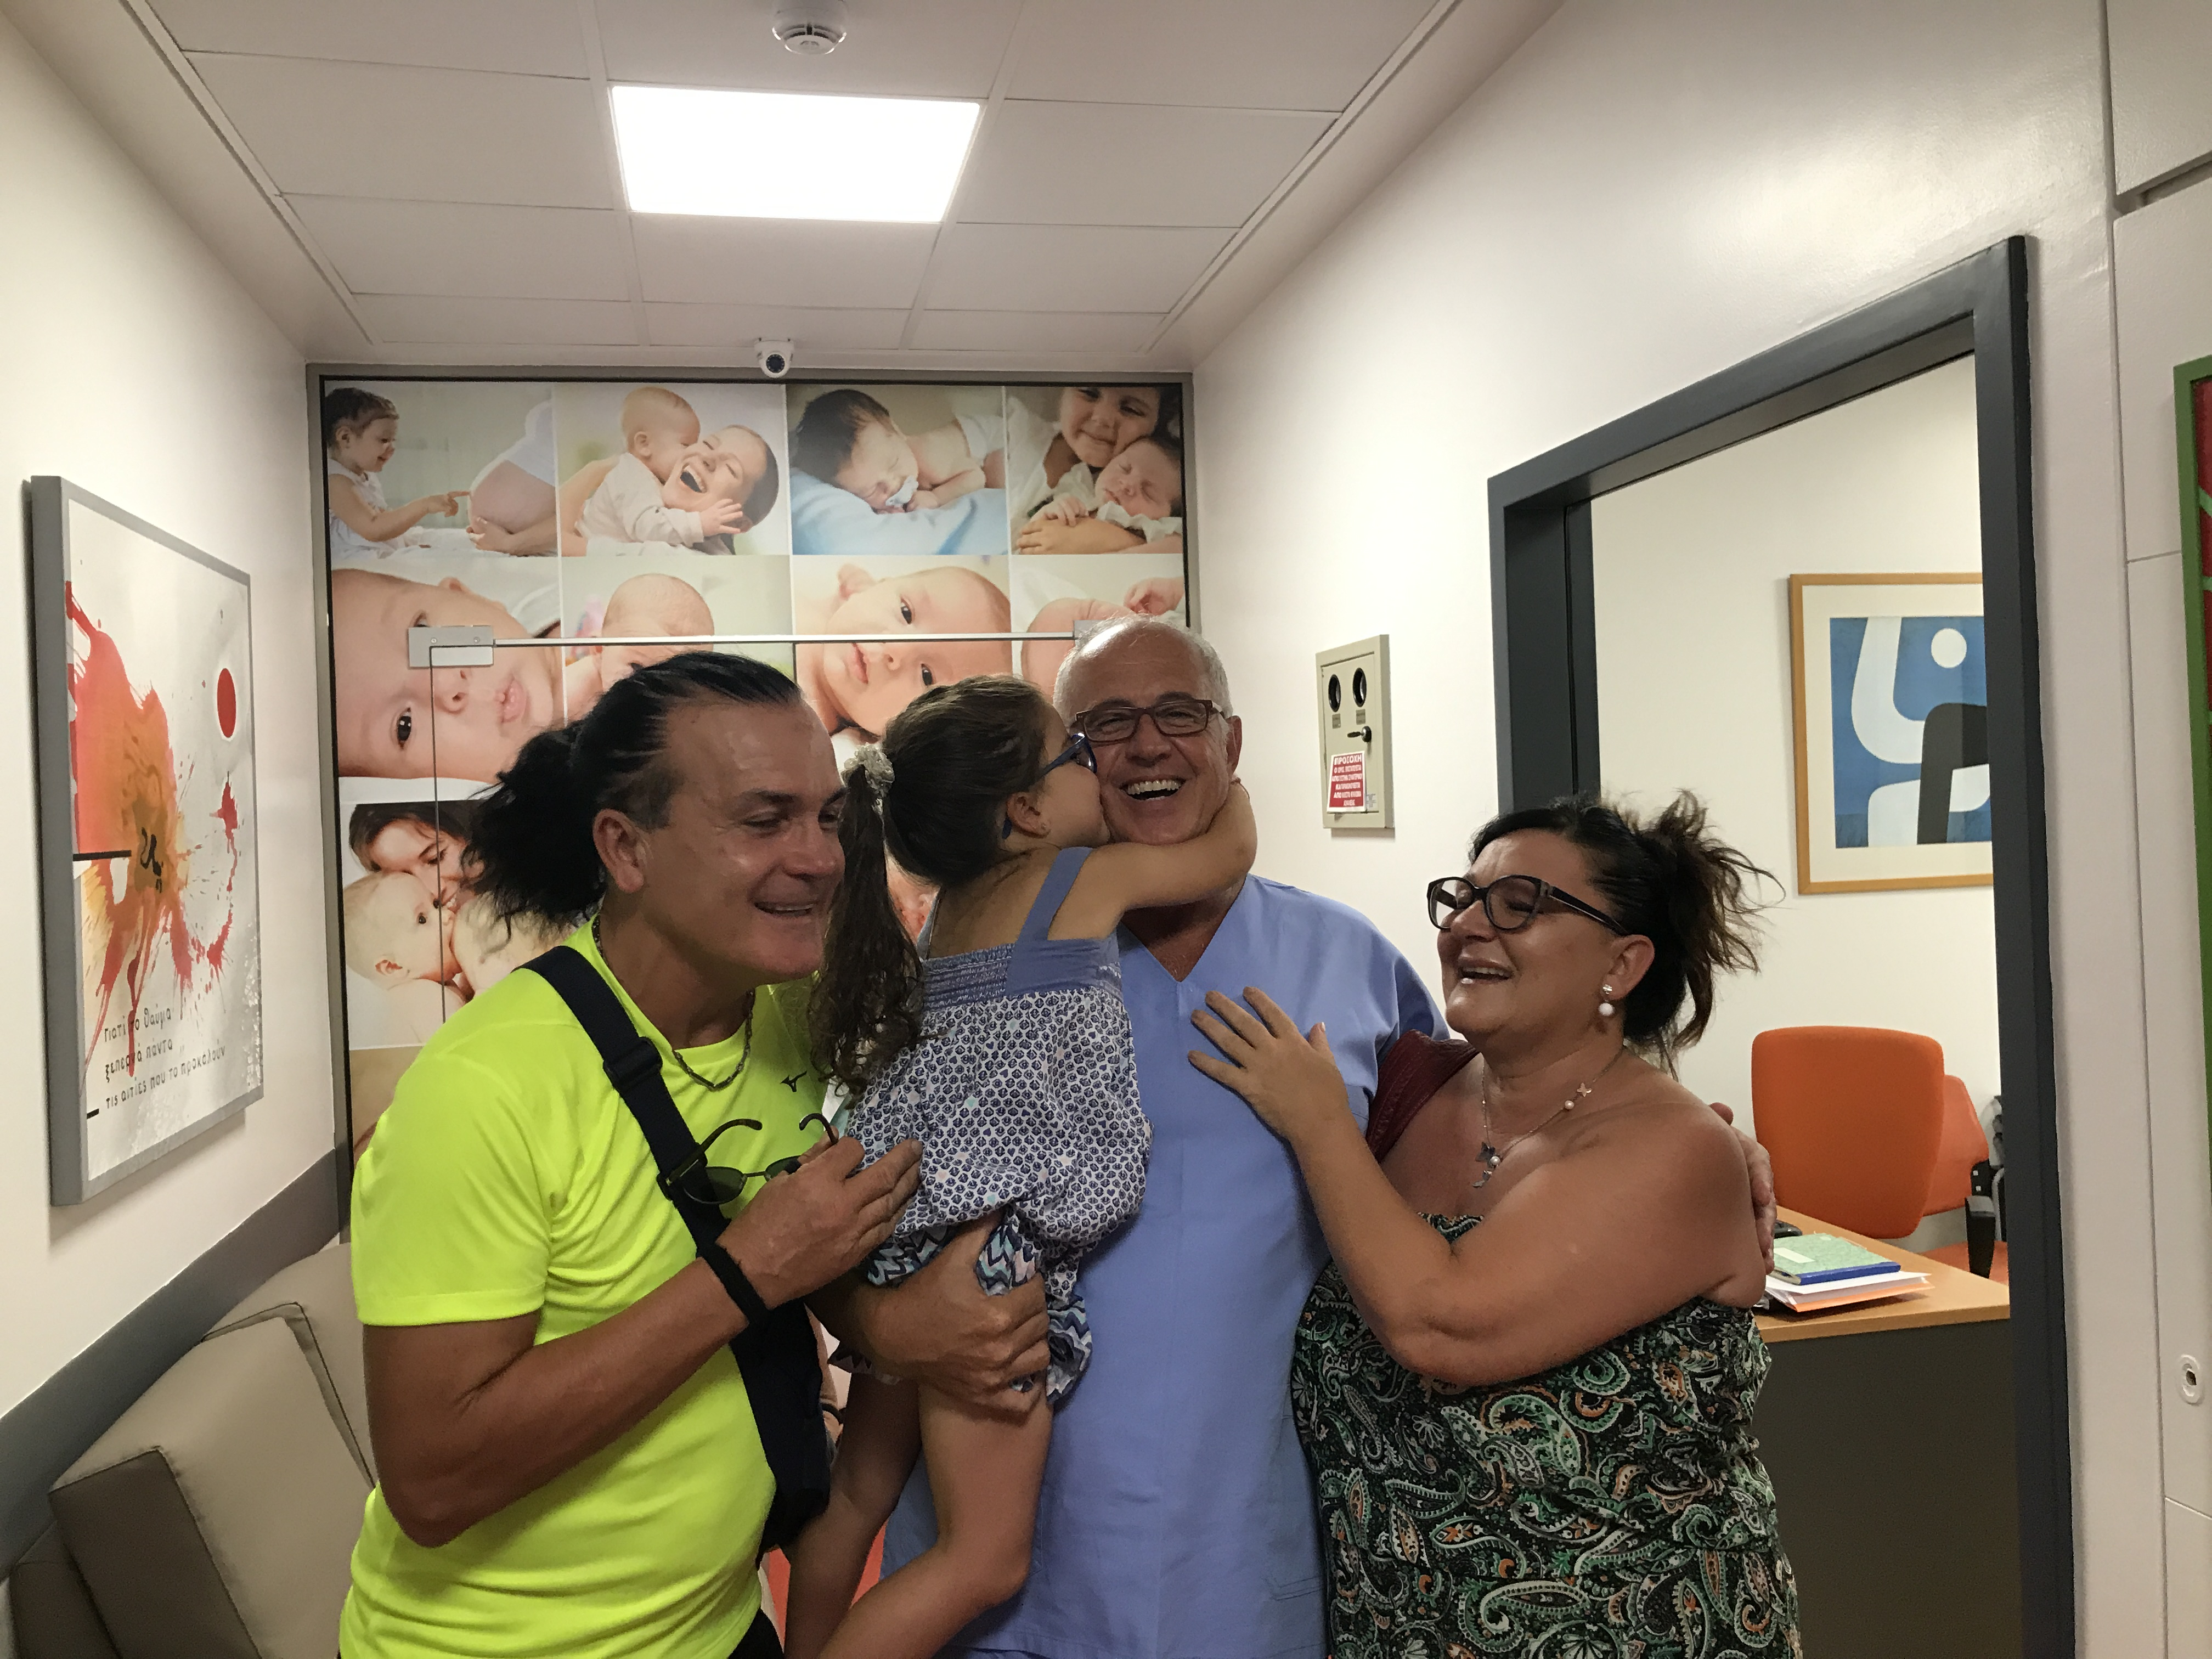 couple-from-Italy-visits-Crete-Fertility-Centre-4-years-after-successful-ivf